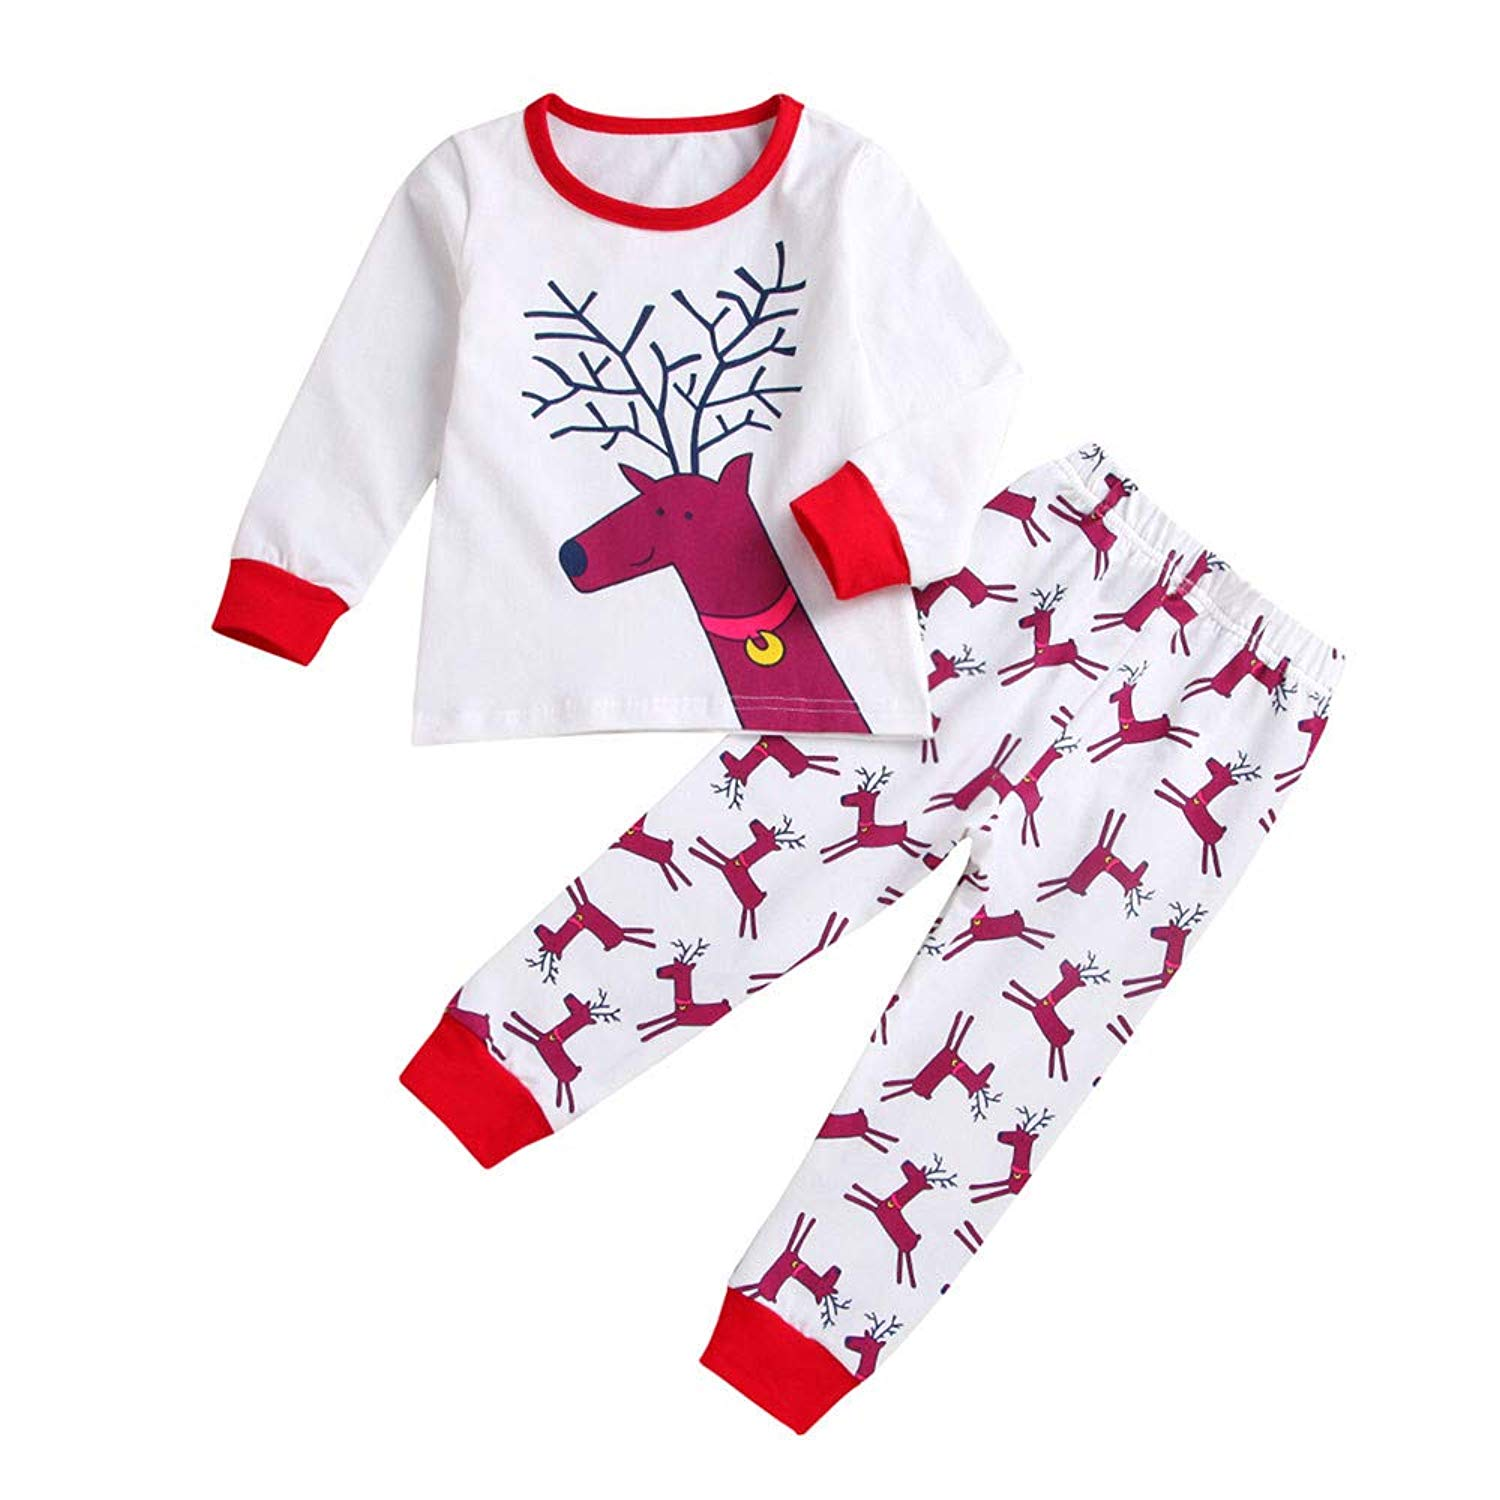 Cheap Baby Girl Pjs, find Baby Girl Pjs deals on line at Alibaba.com